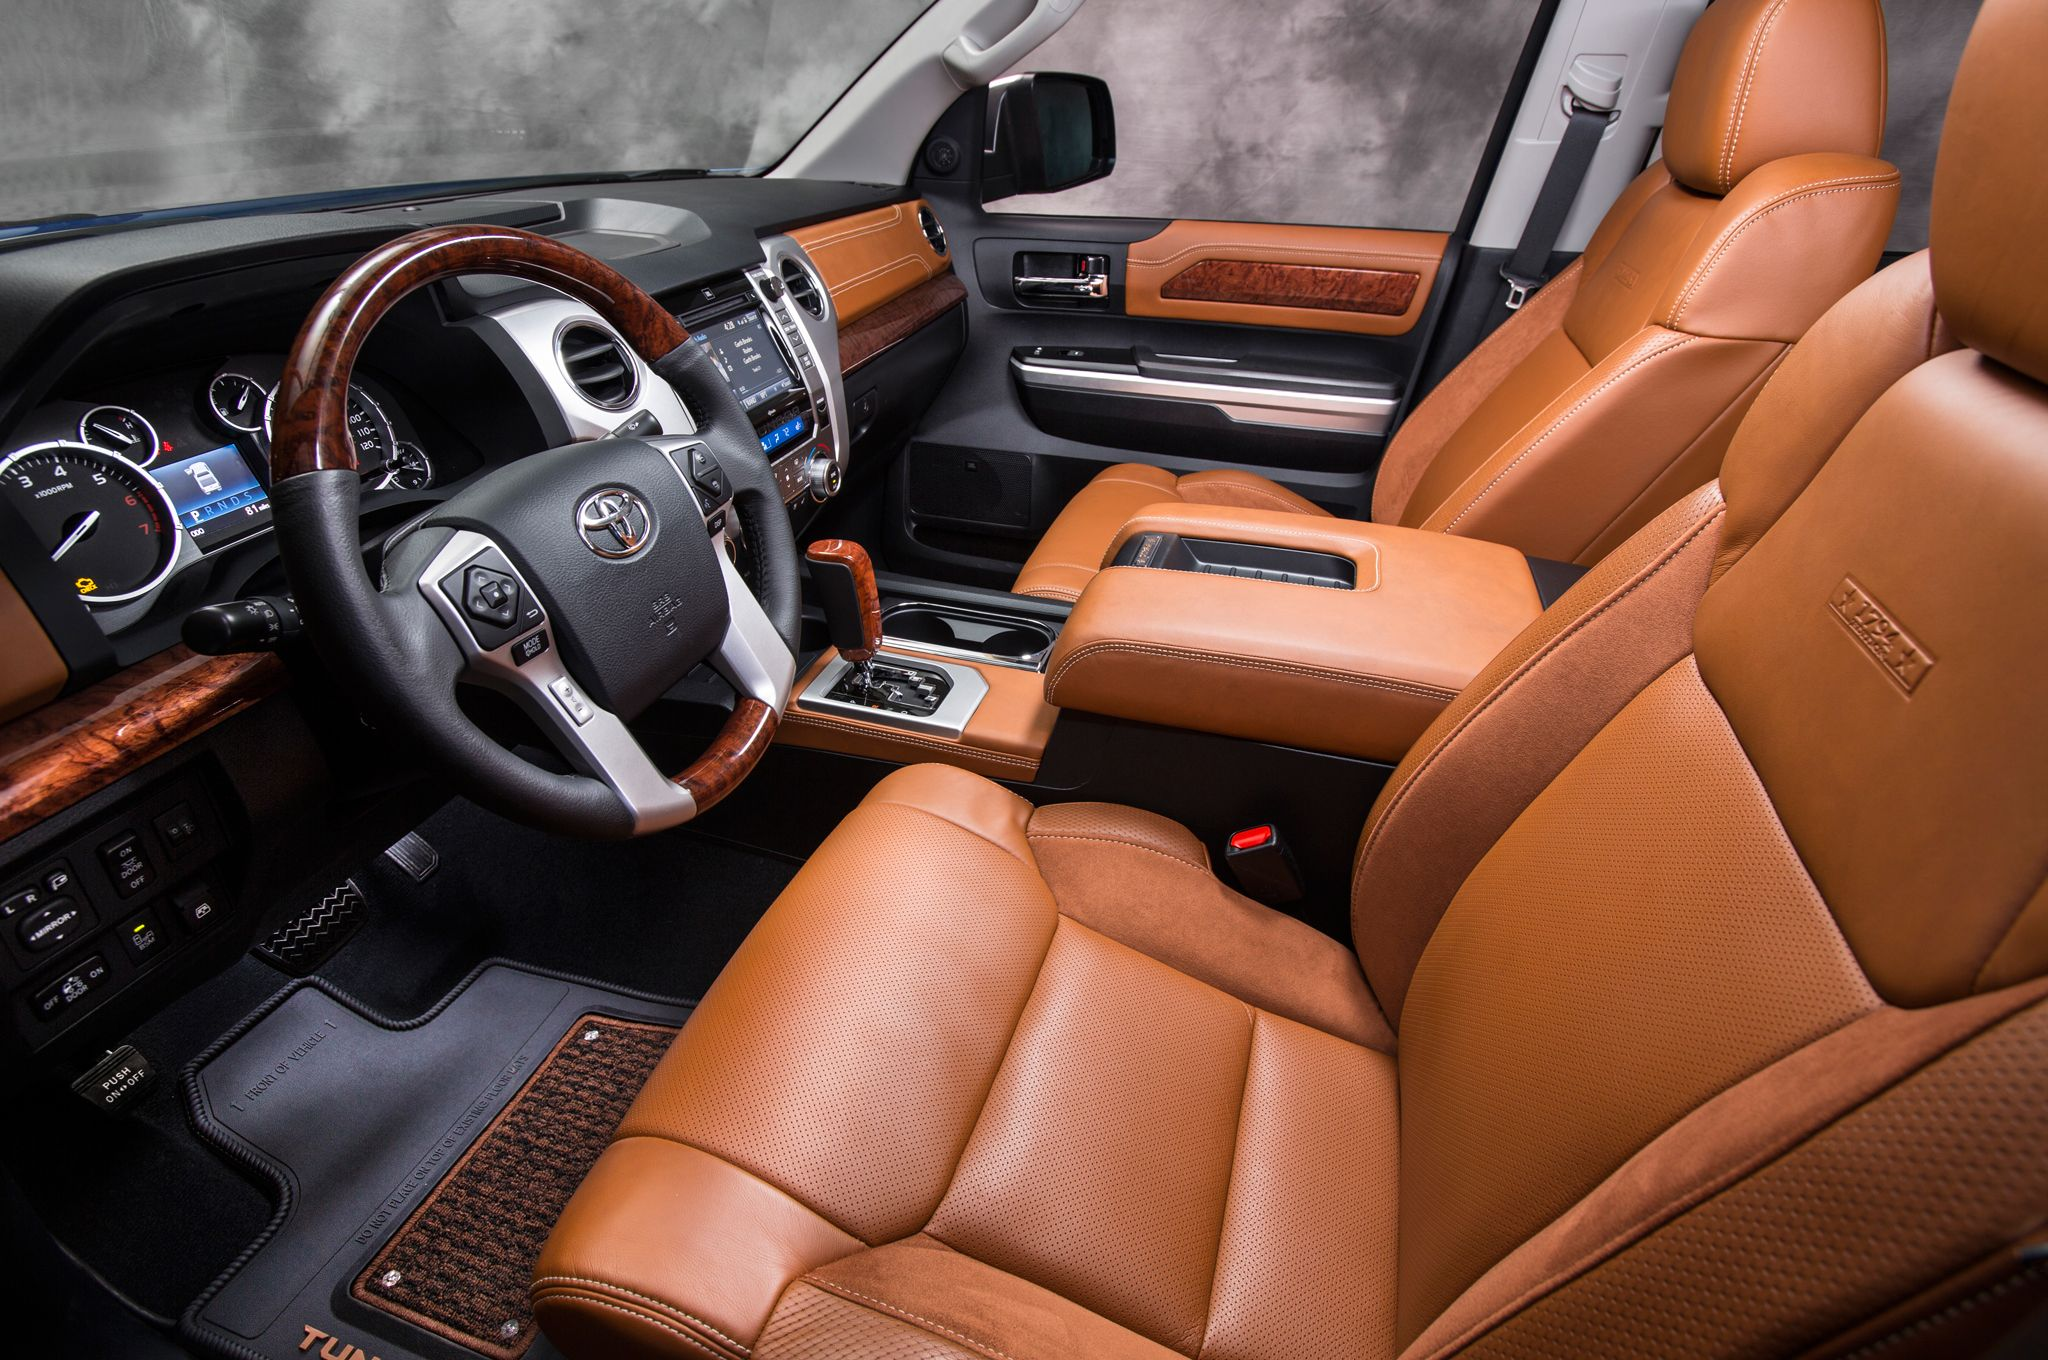 Marvelous 2014 Toyota Tundra 1794 Edition   Interior Front